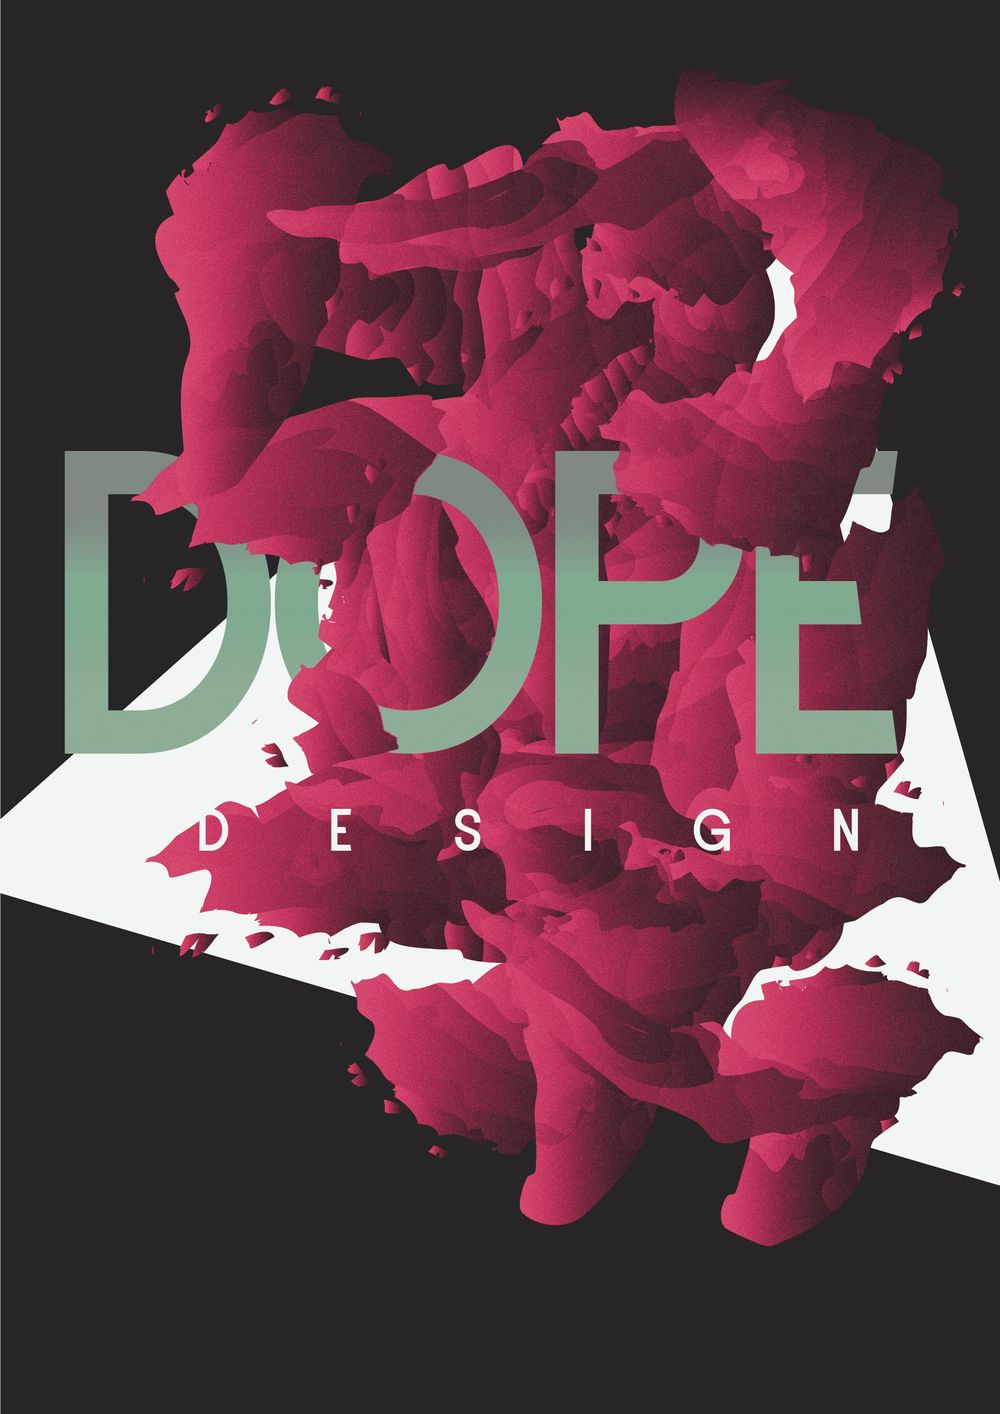 Dope - image 1 - student project